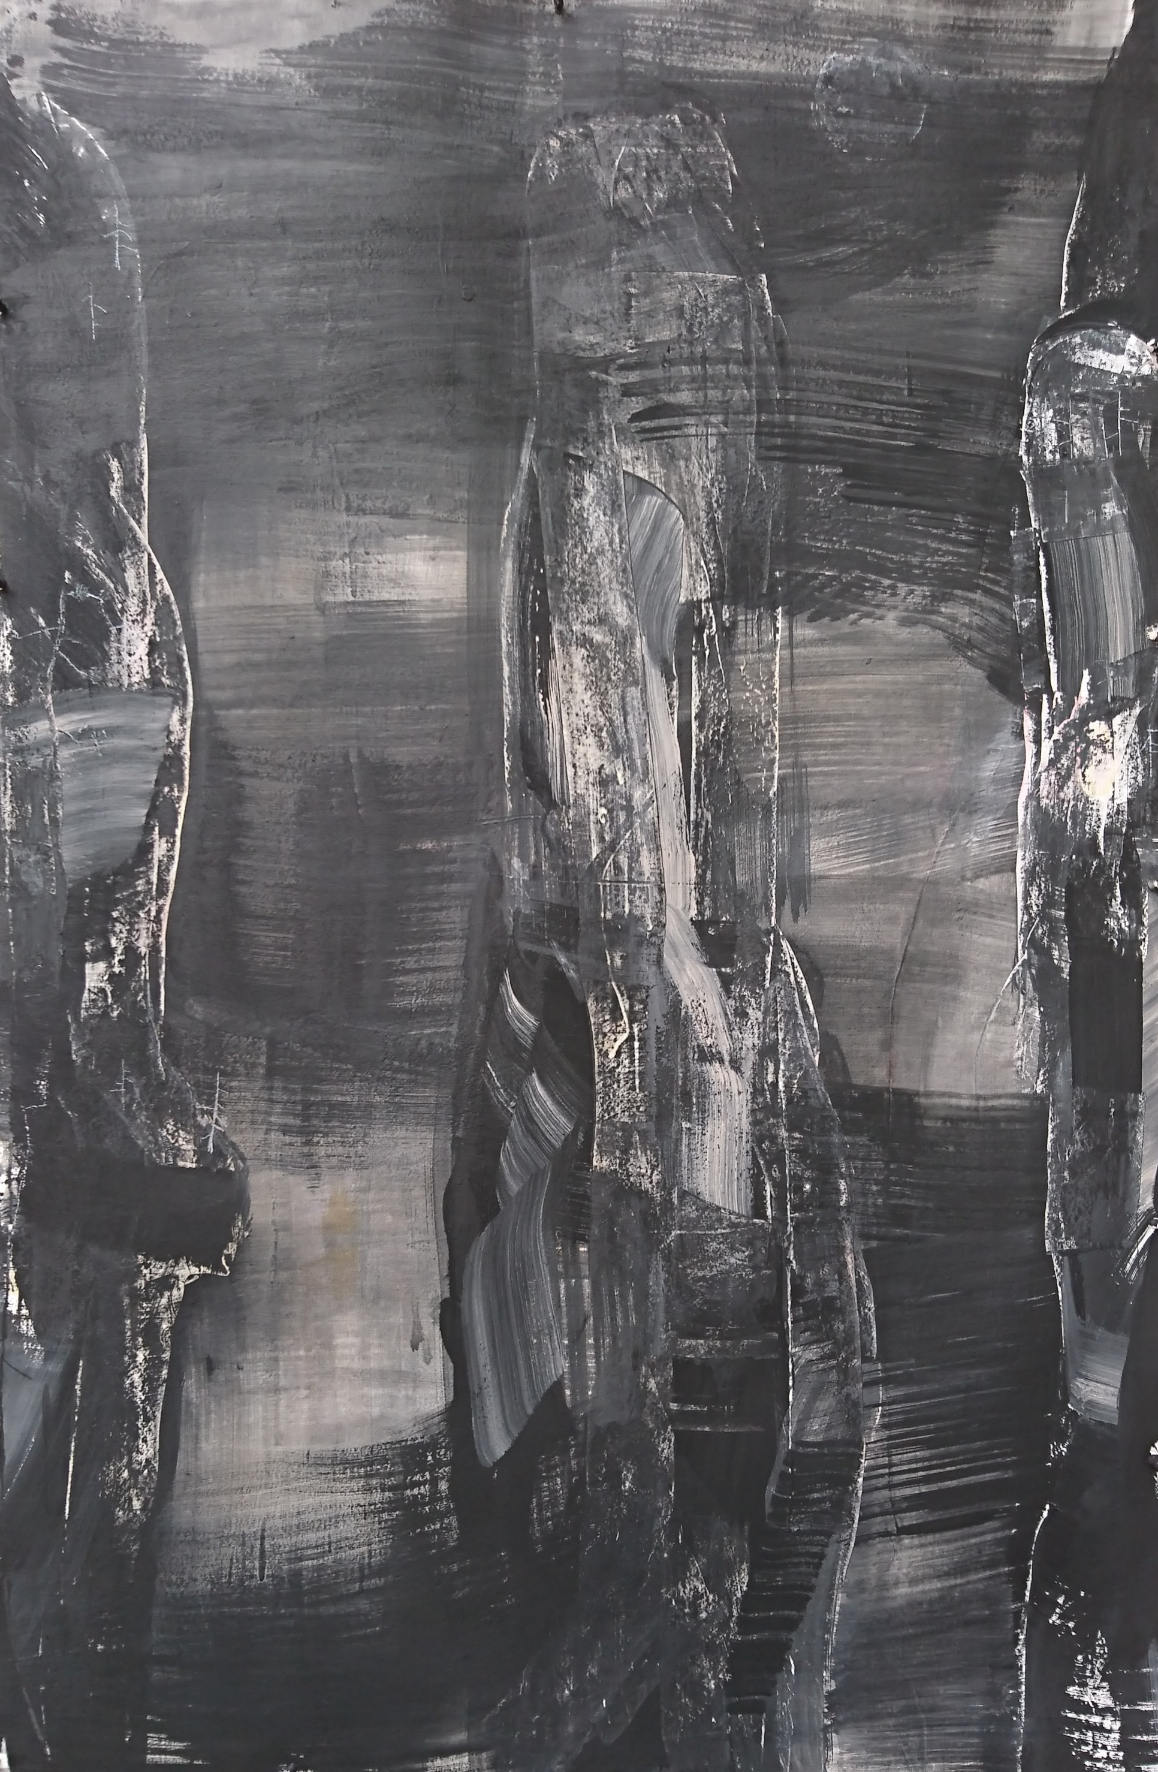 Angus Nivison_Moonrise and mist, Zahnjiajie, 2018, graphite and acrylic on 640 gsm arches, 153cm X 102cm.jpg